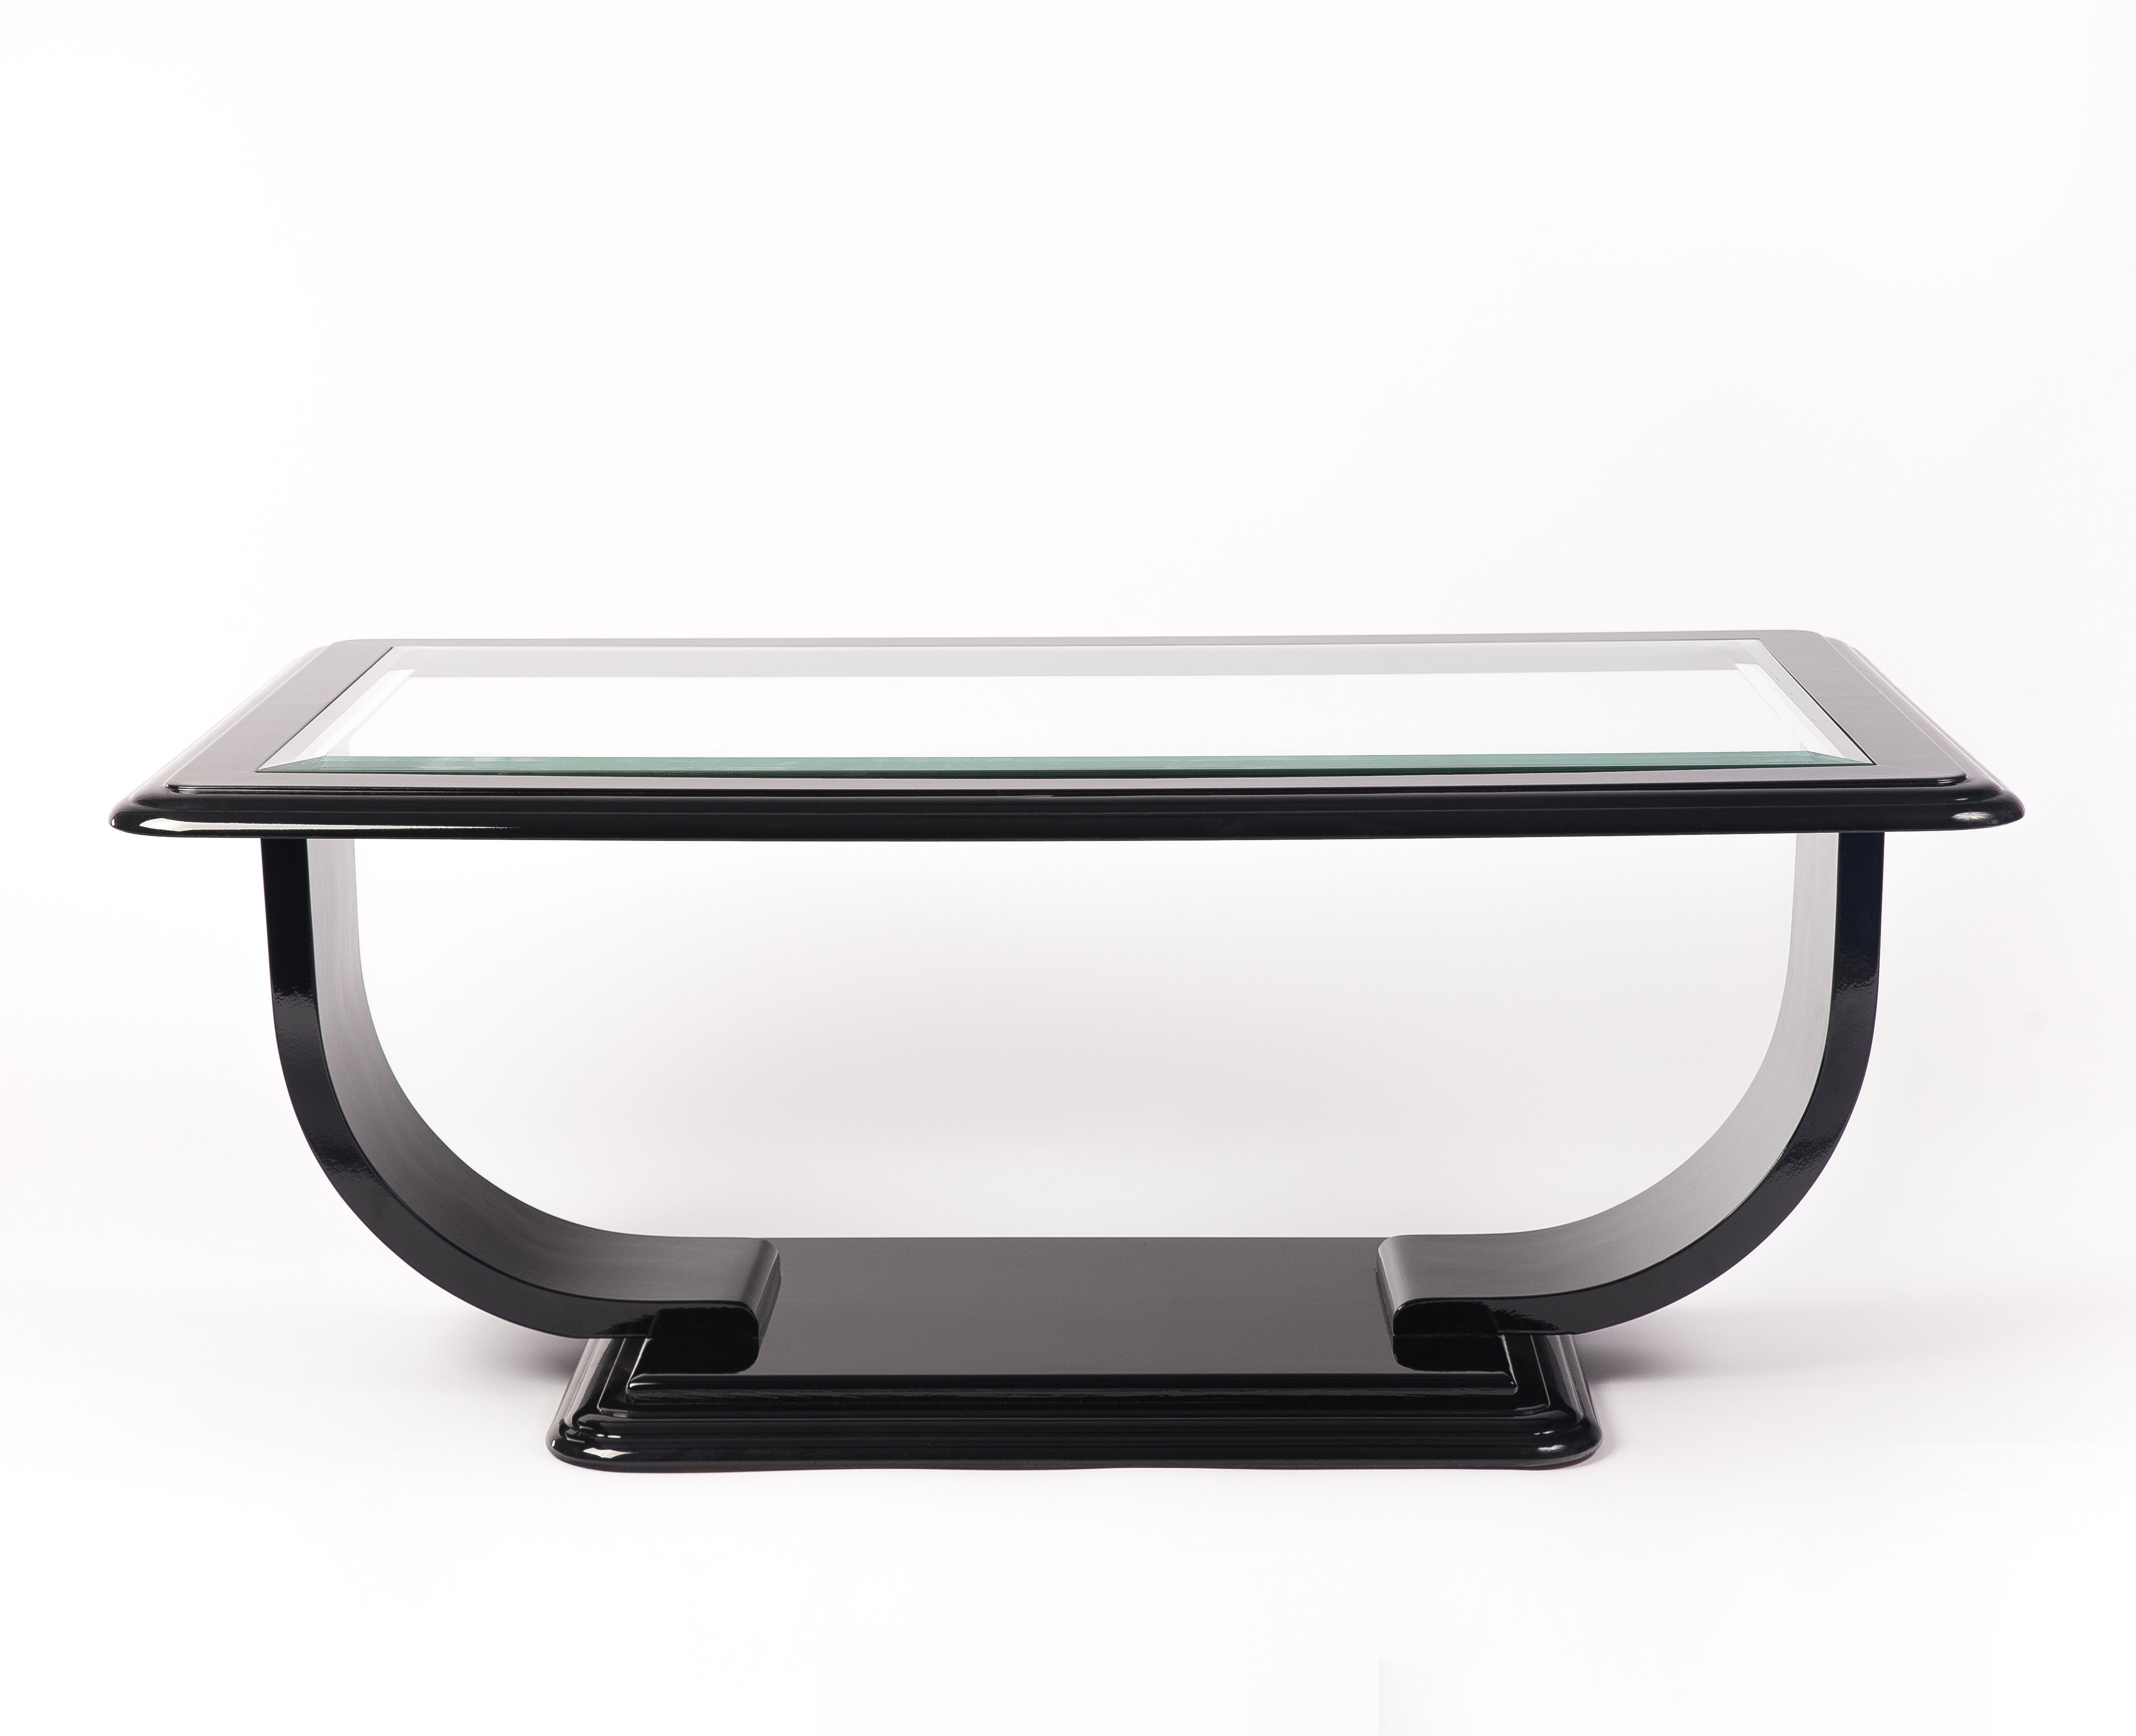 Art Deco Style Square Glass Top Coffee Table 1940s 87091 Art Deco Coffee Table Glass Top Coffee Table Modern Art Deco [ 4015 x 4941 Pixel ]